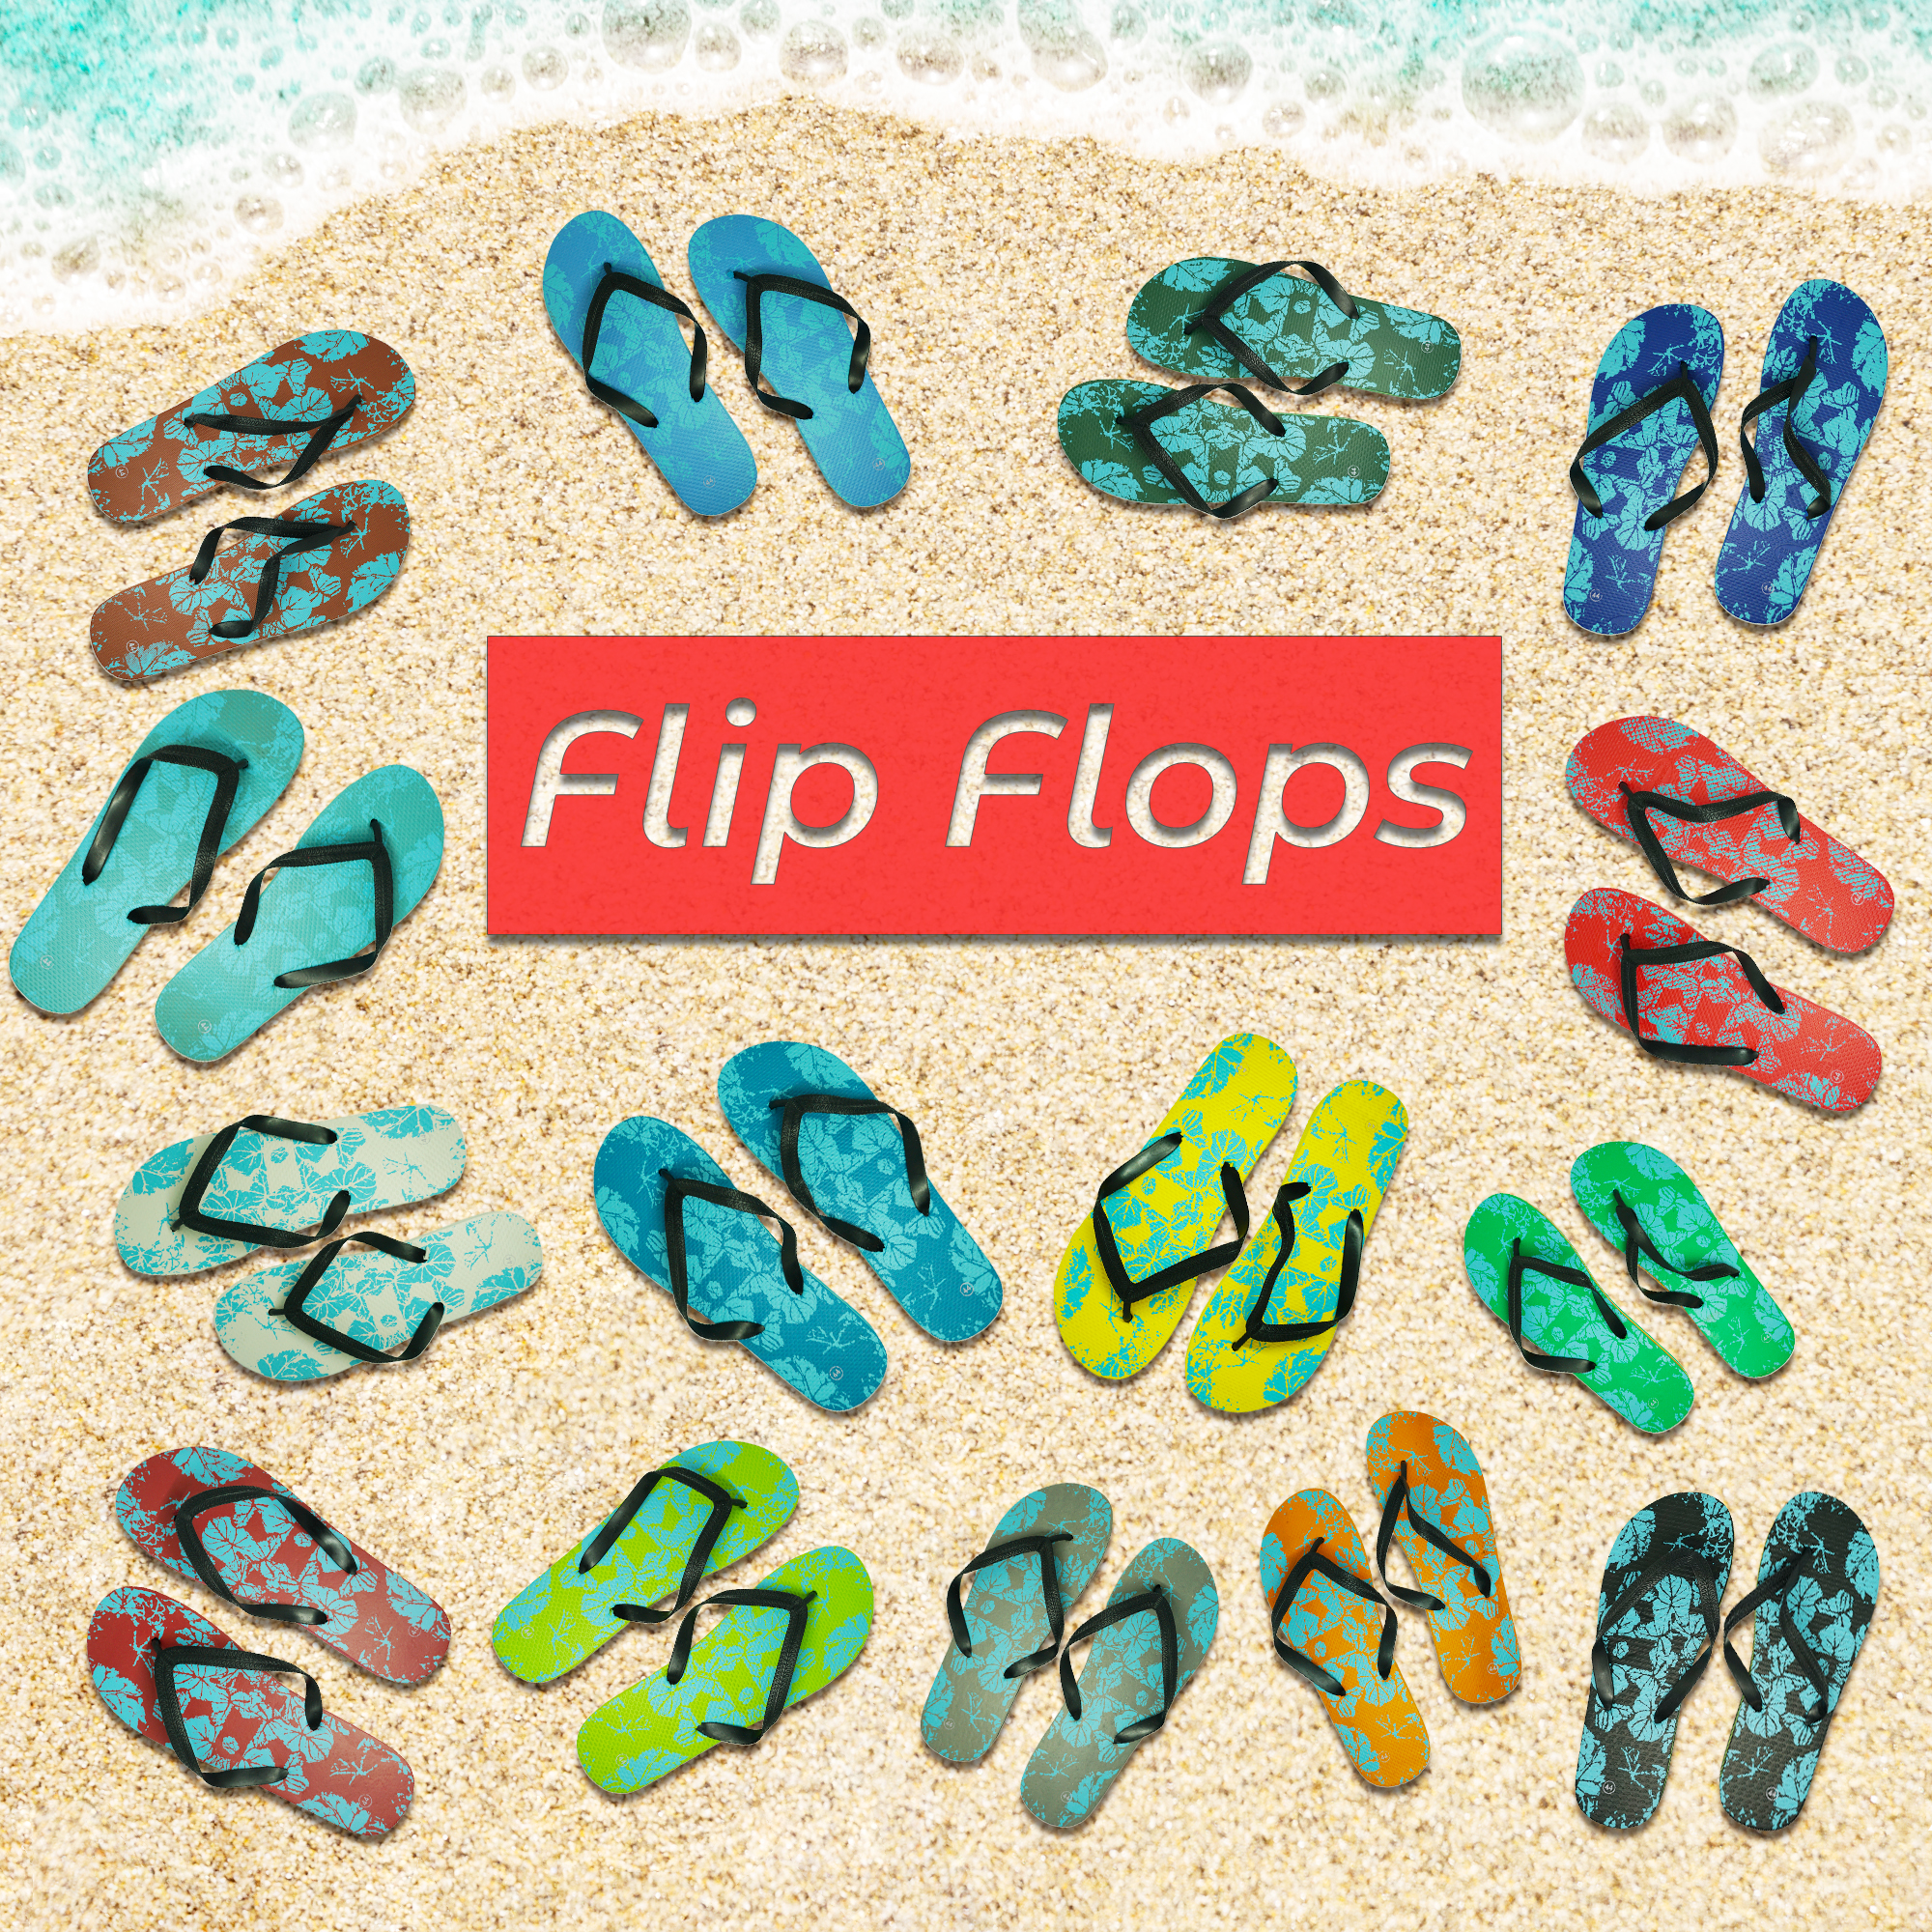 Fashion Home Pinch Non-slip Beach Flops Home Slippers 40/26.5cm_Mixed color